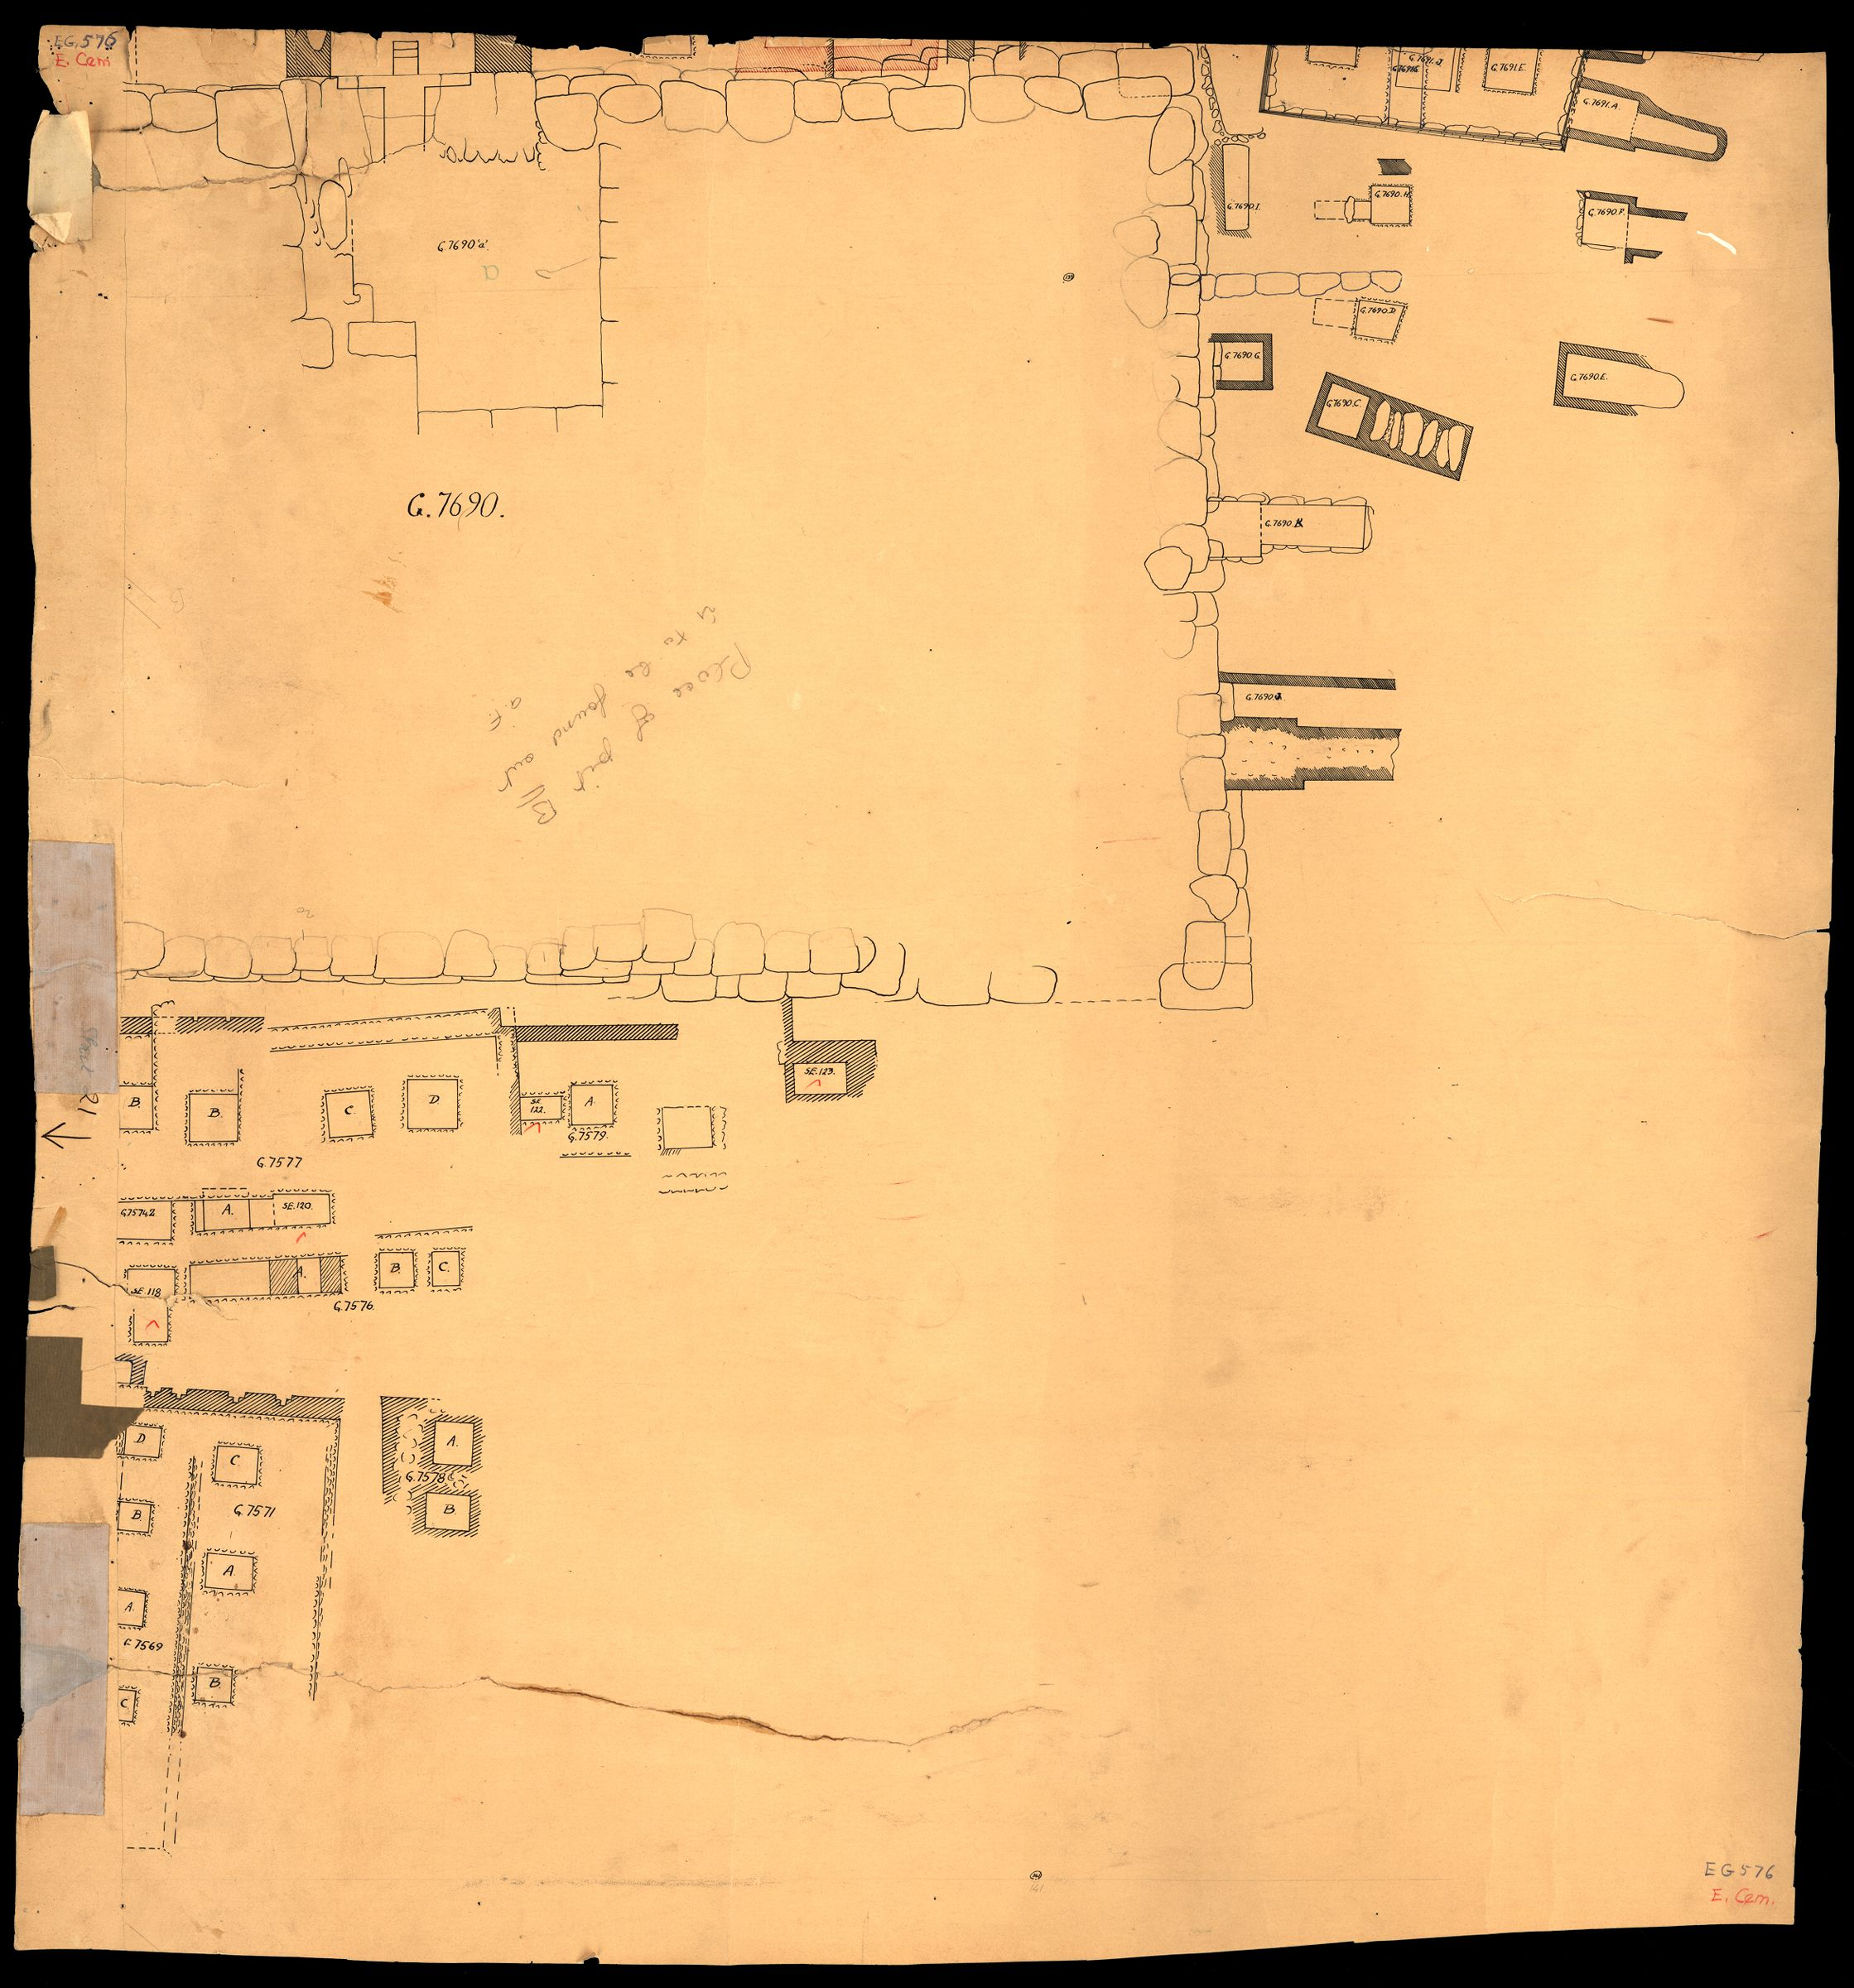 Maps and plans: Plan of cemetery G 7000: G 7690 and surrounding area